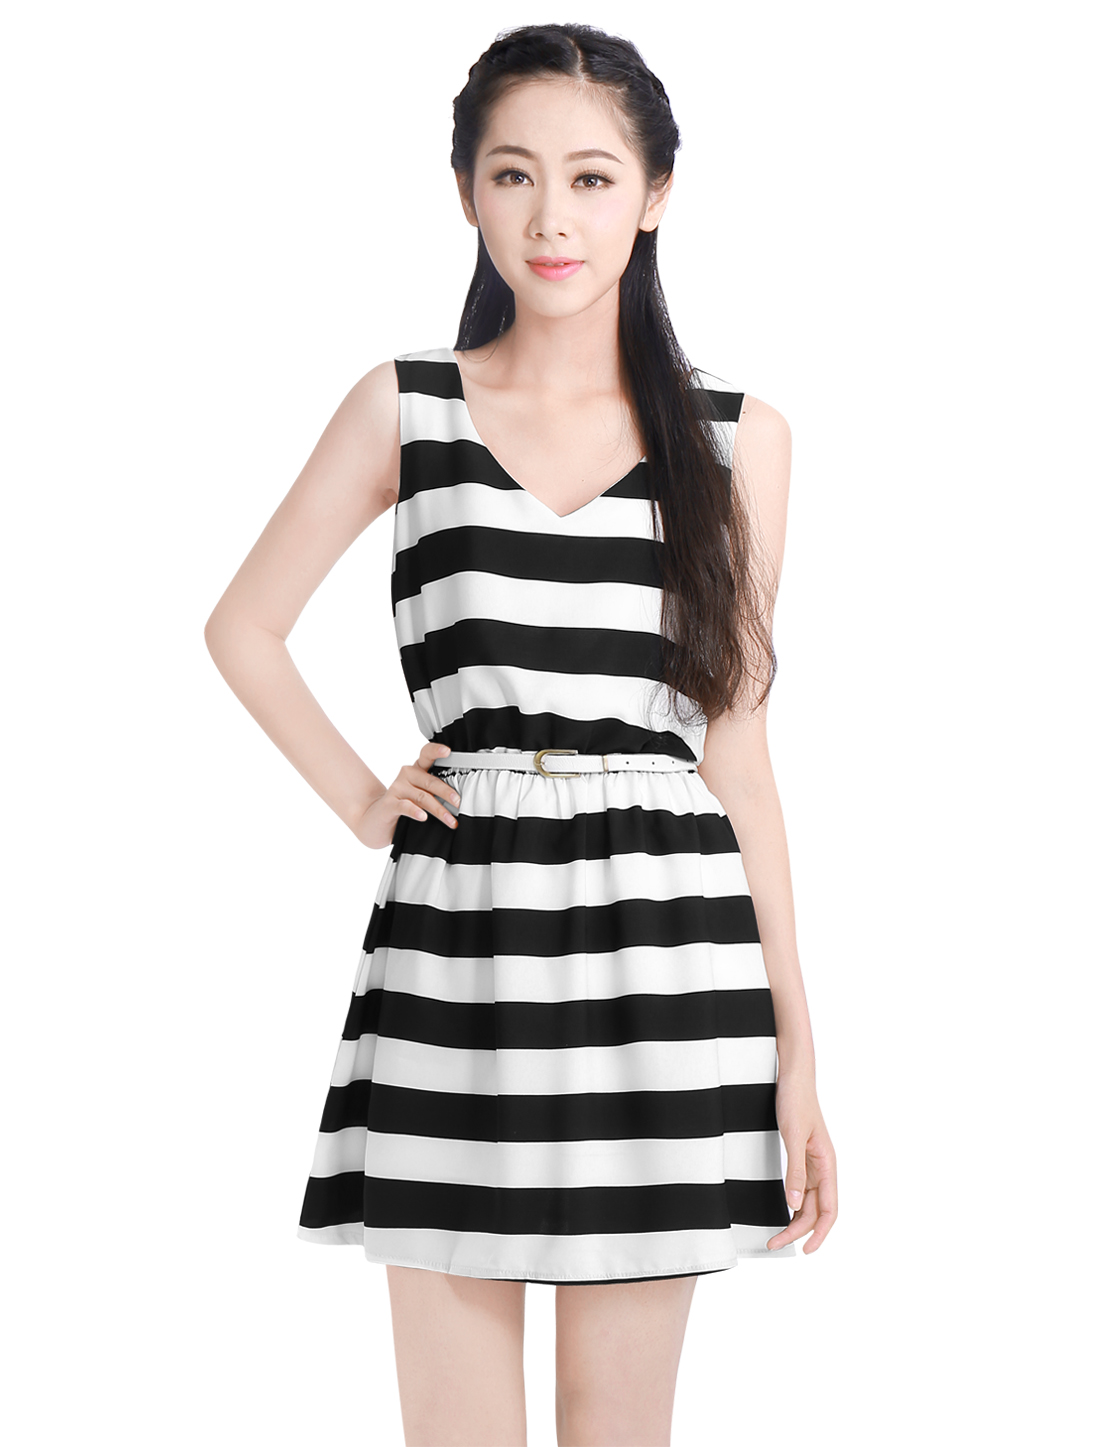 Pullover Chic V-Neck Black White Striped Mini Dress M w Belt for Lady